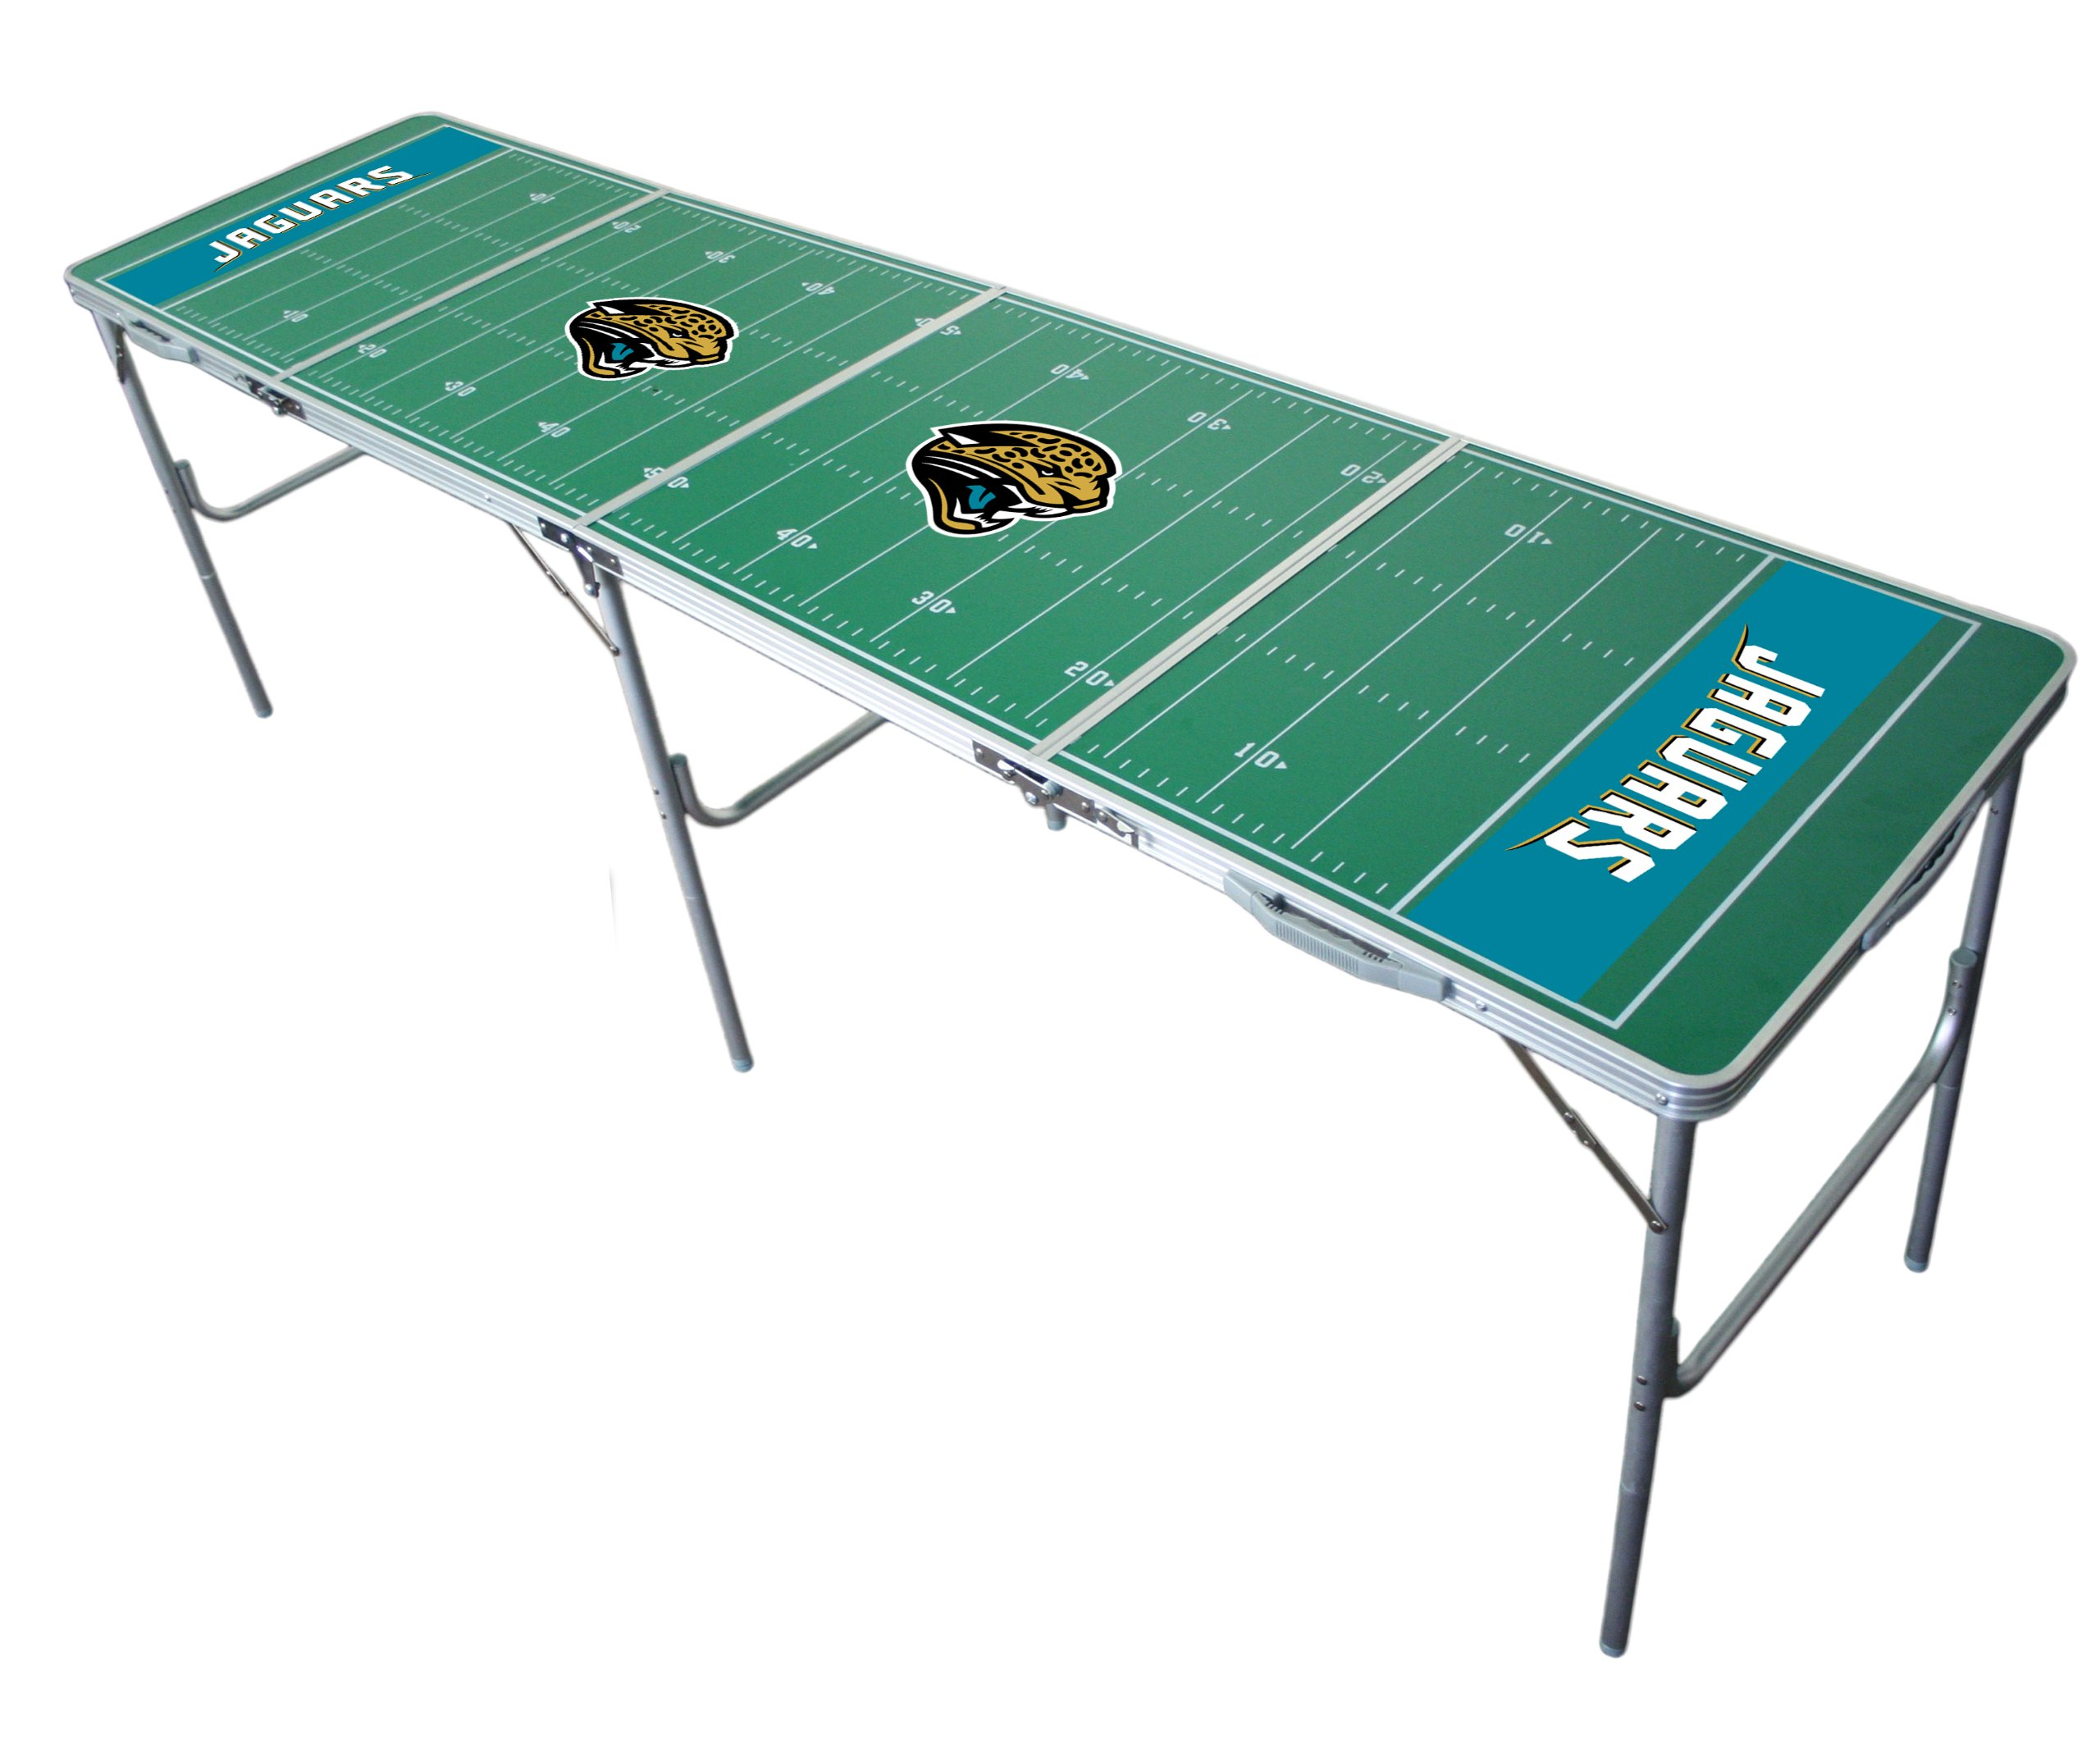 Jacksonville Jaguars 2x8 Tailgate Table by Wild Sports by Wild Sports